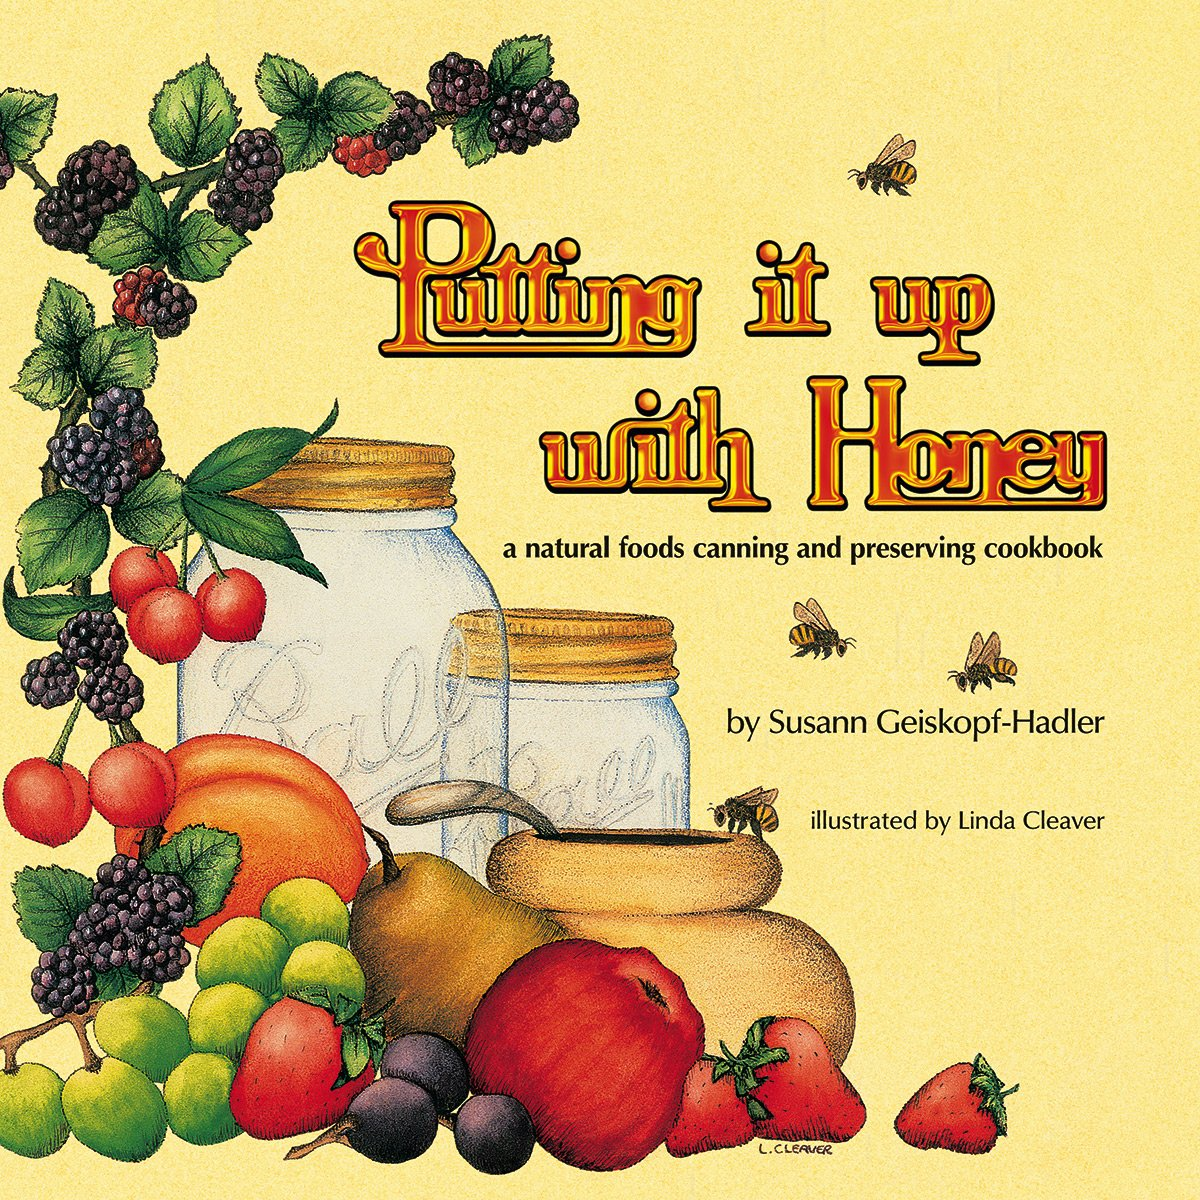 Putting It Up With Honey: A Natural Foods Canning and Preserving Cookbook, Susann Geiskopf-Hadler